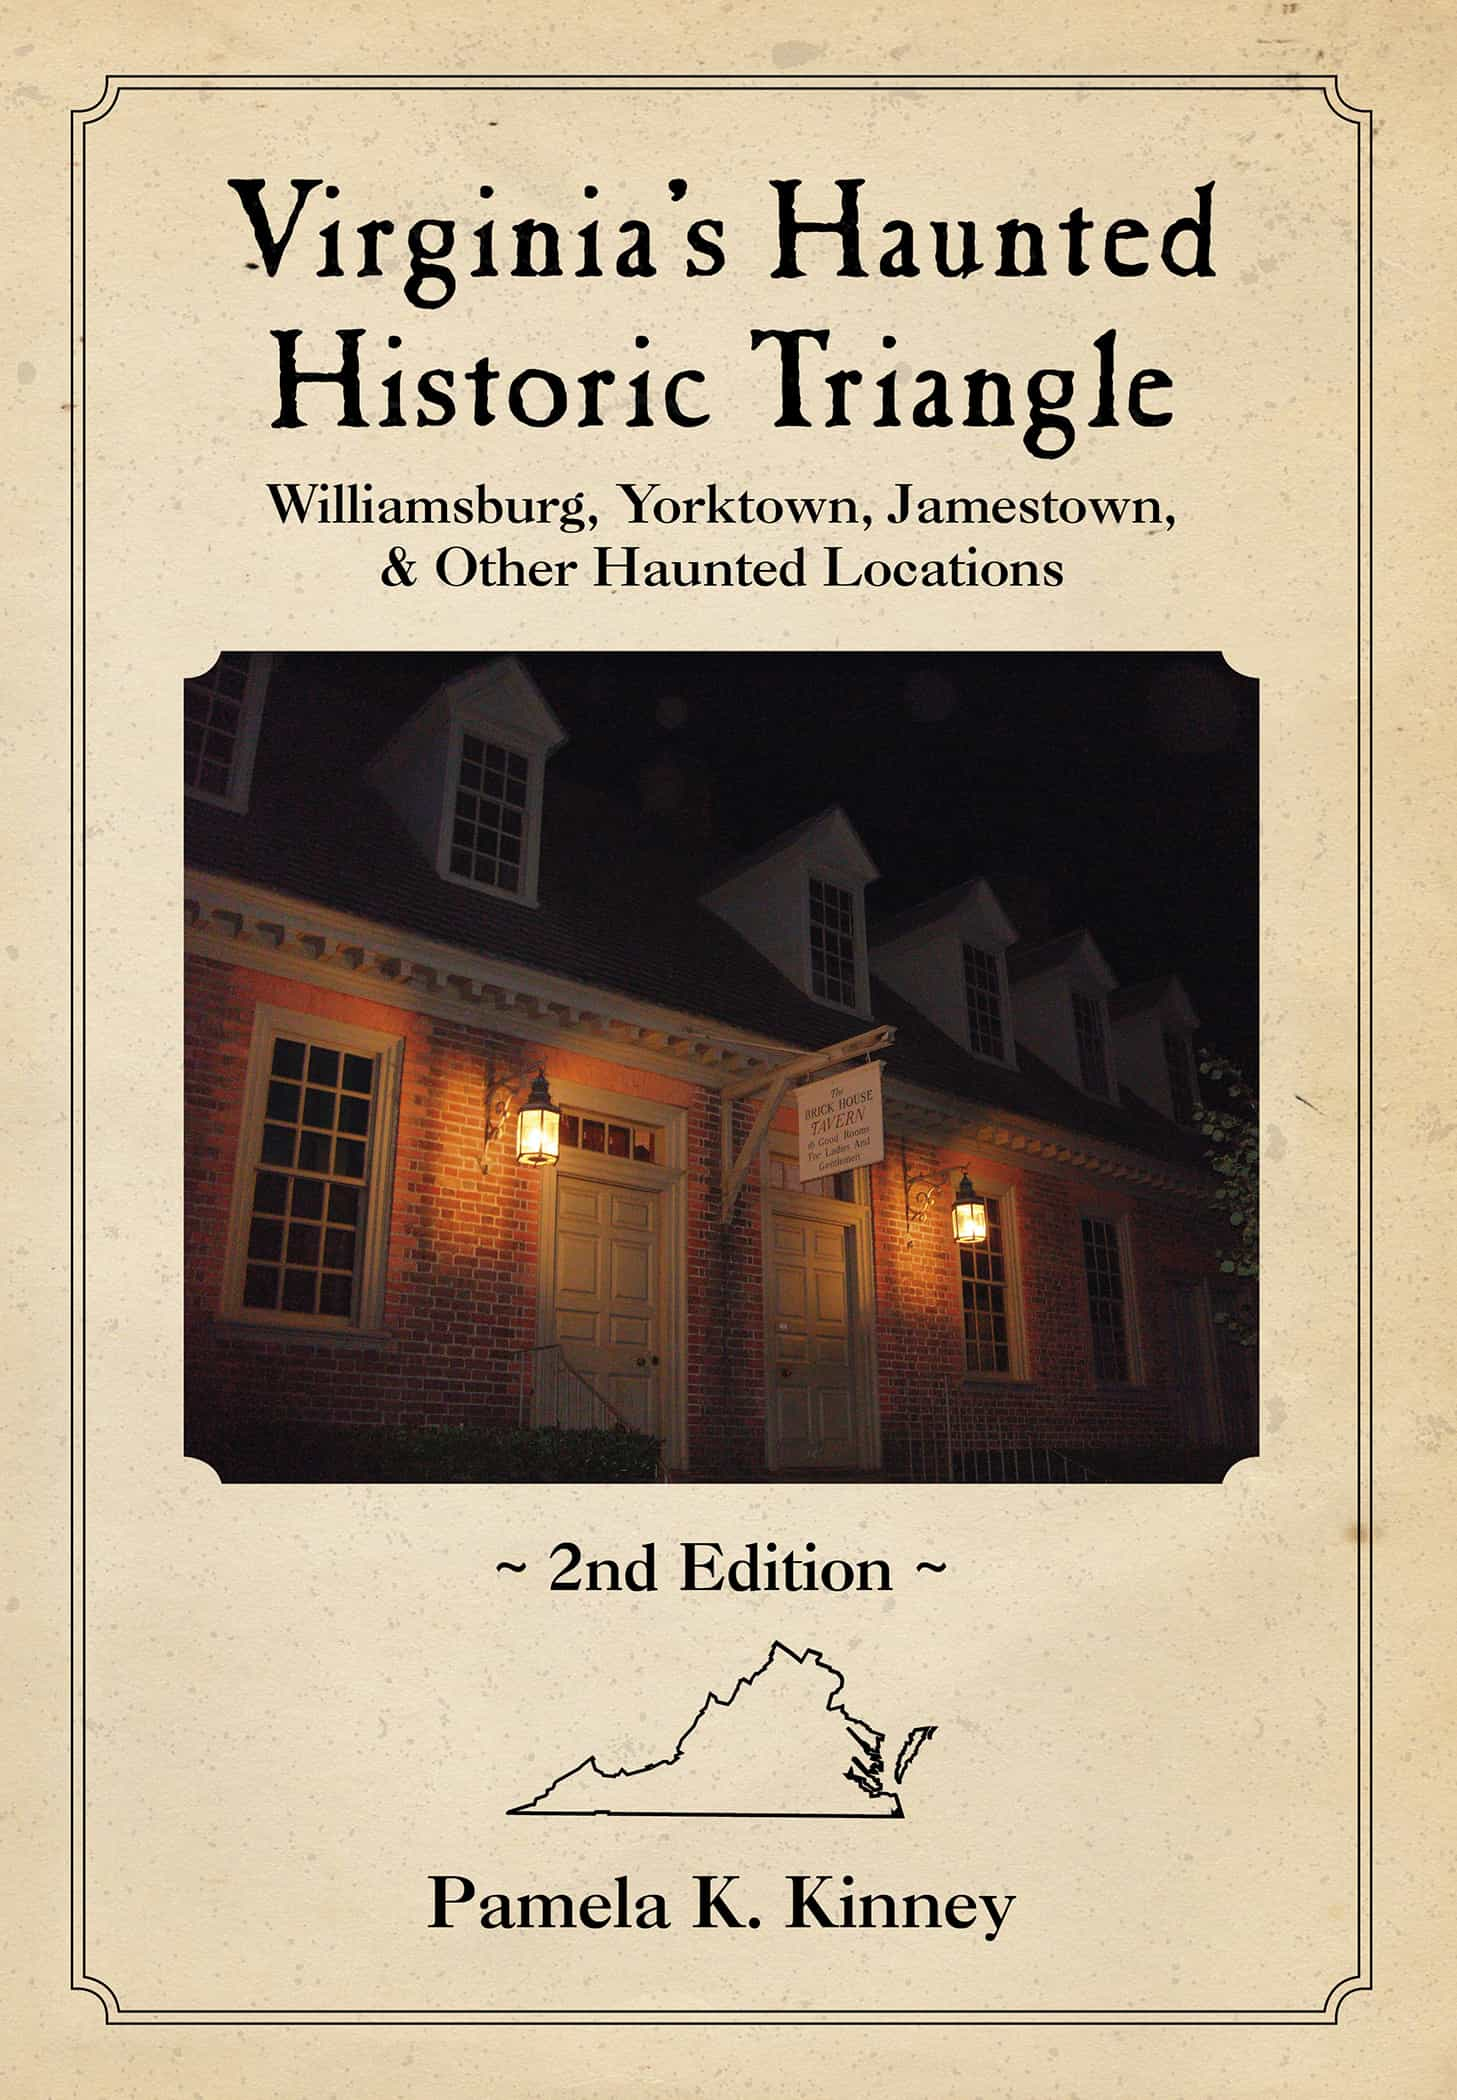 VIrginia's Haunted Historic Triangle: Williamsburg, Yorktown, Jamestown & Other Haunted Locations by Pamela K. Kinney